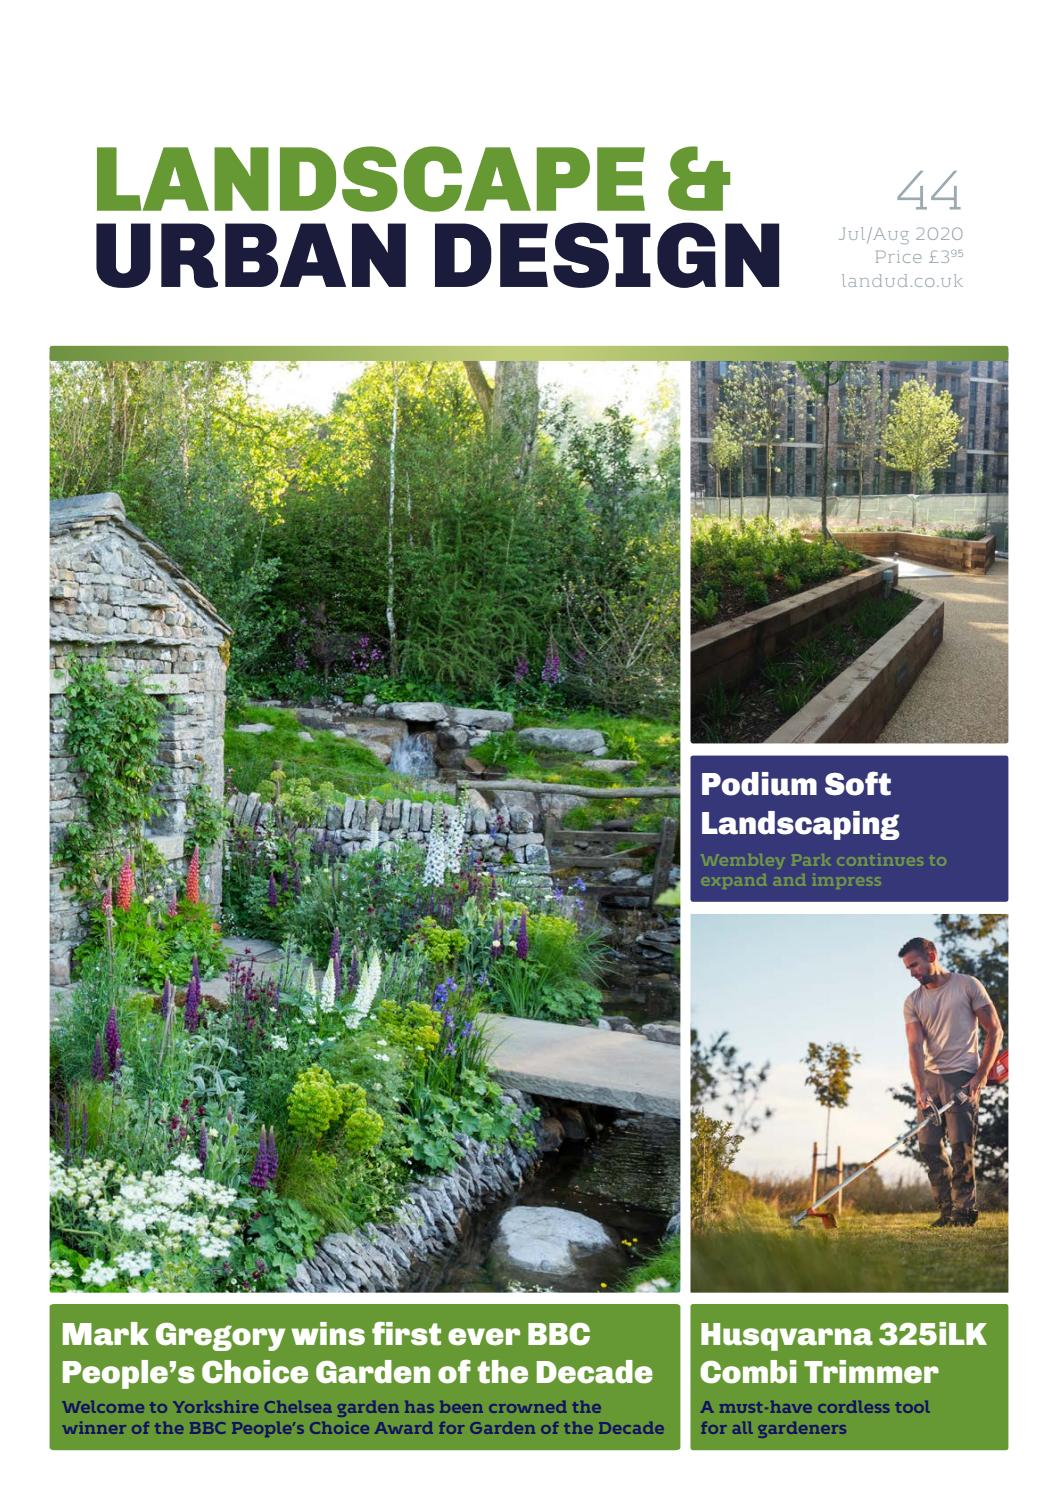 management of artificially created species-rich meadows in urban landscaping schemes.